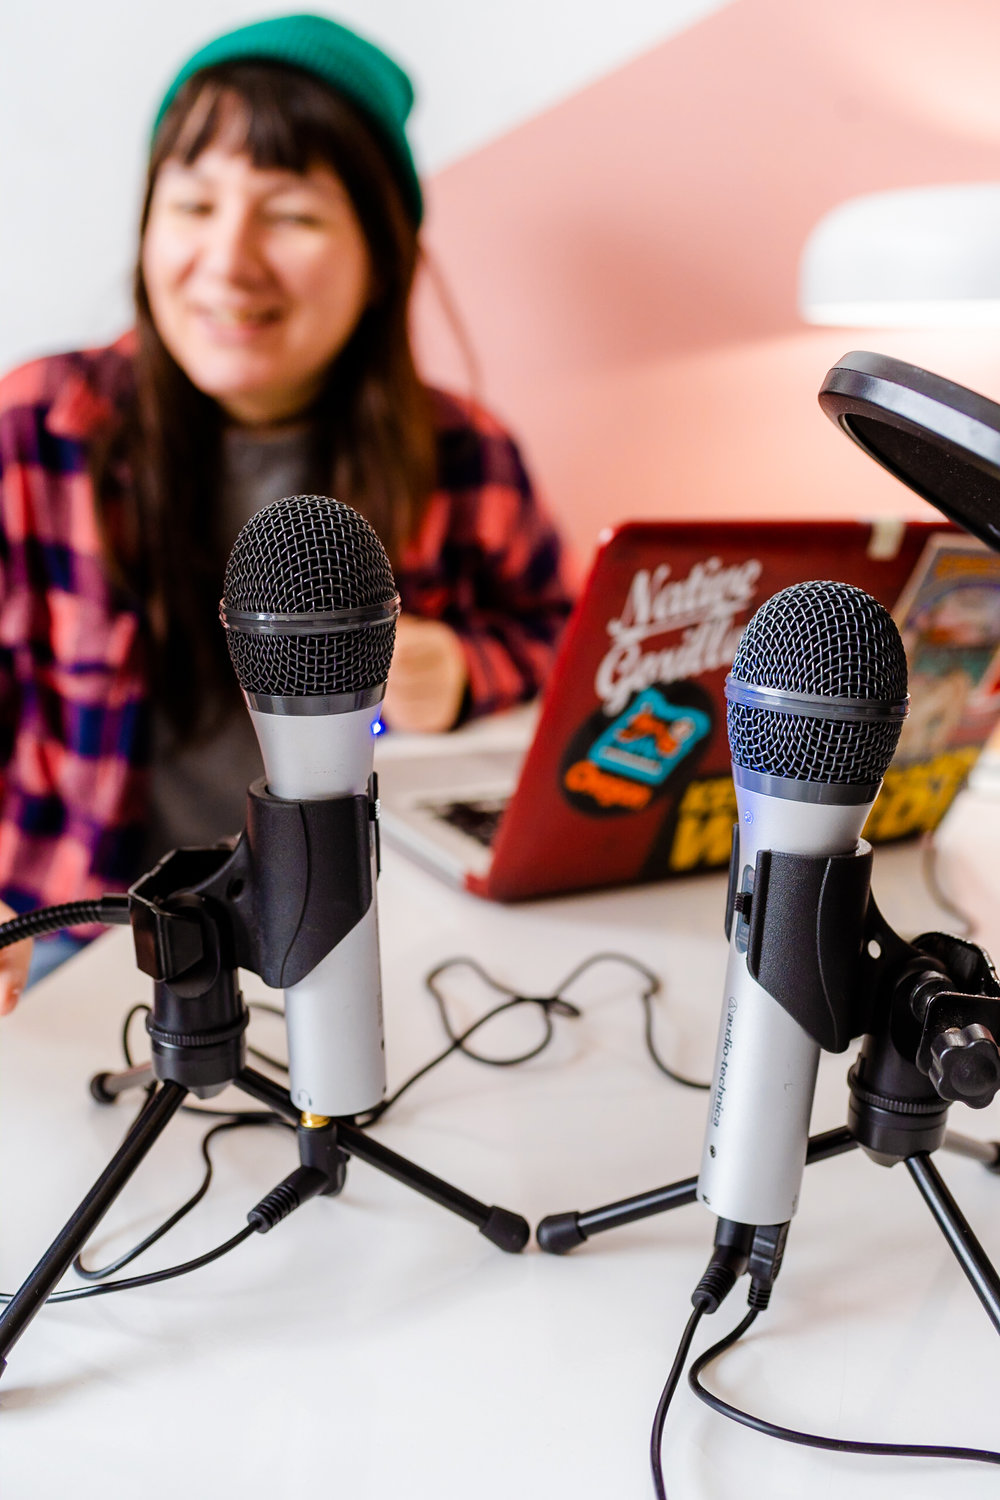 room-402-podcasting-12 copy.jpg